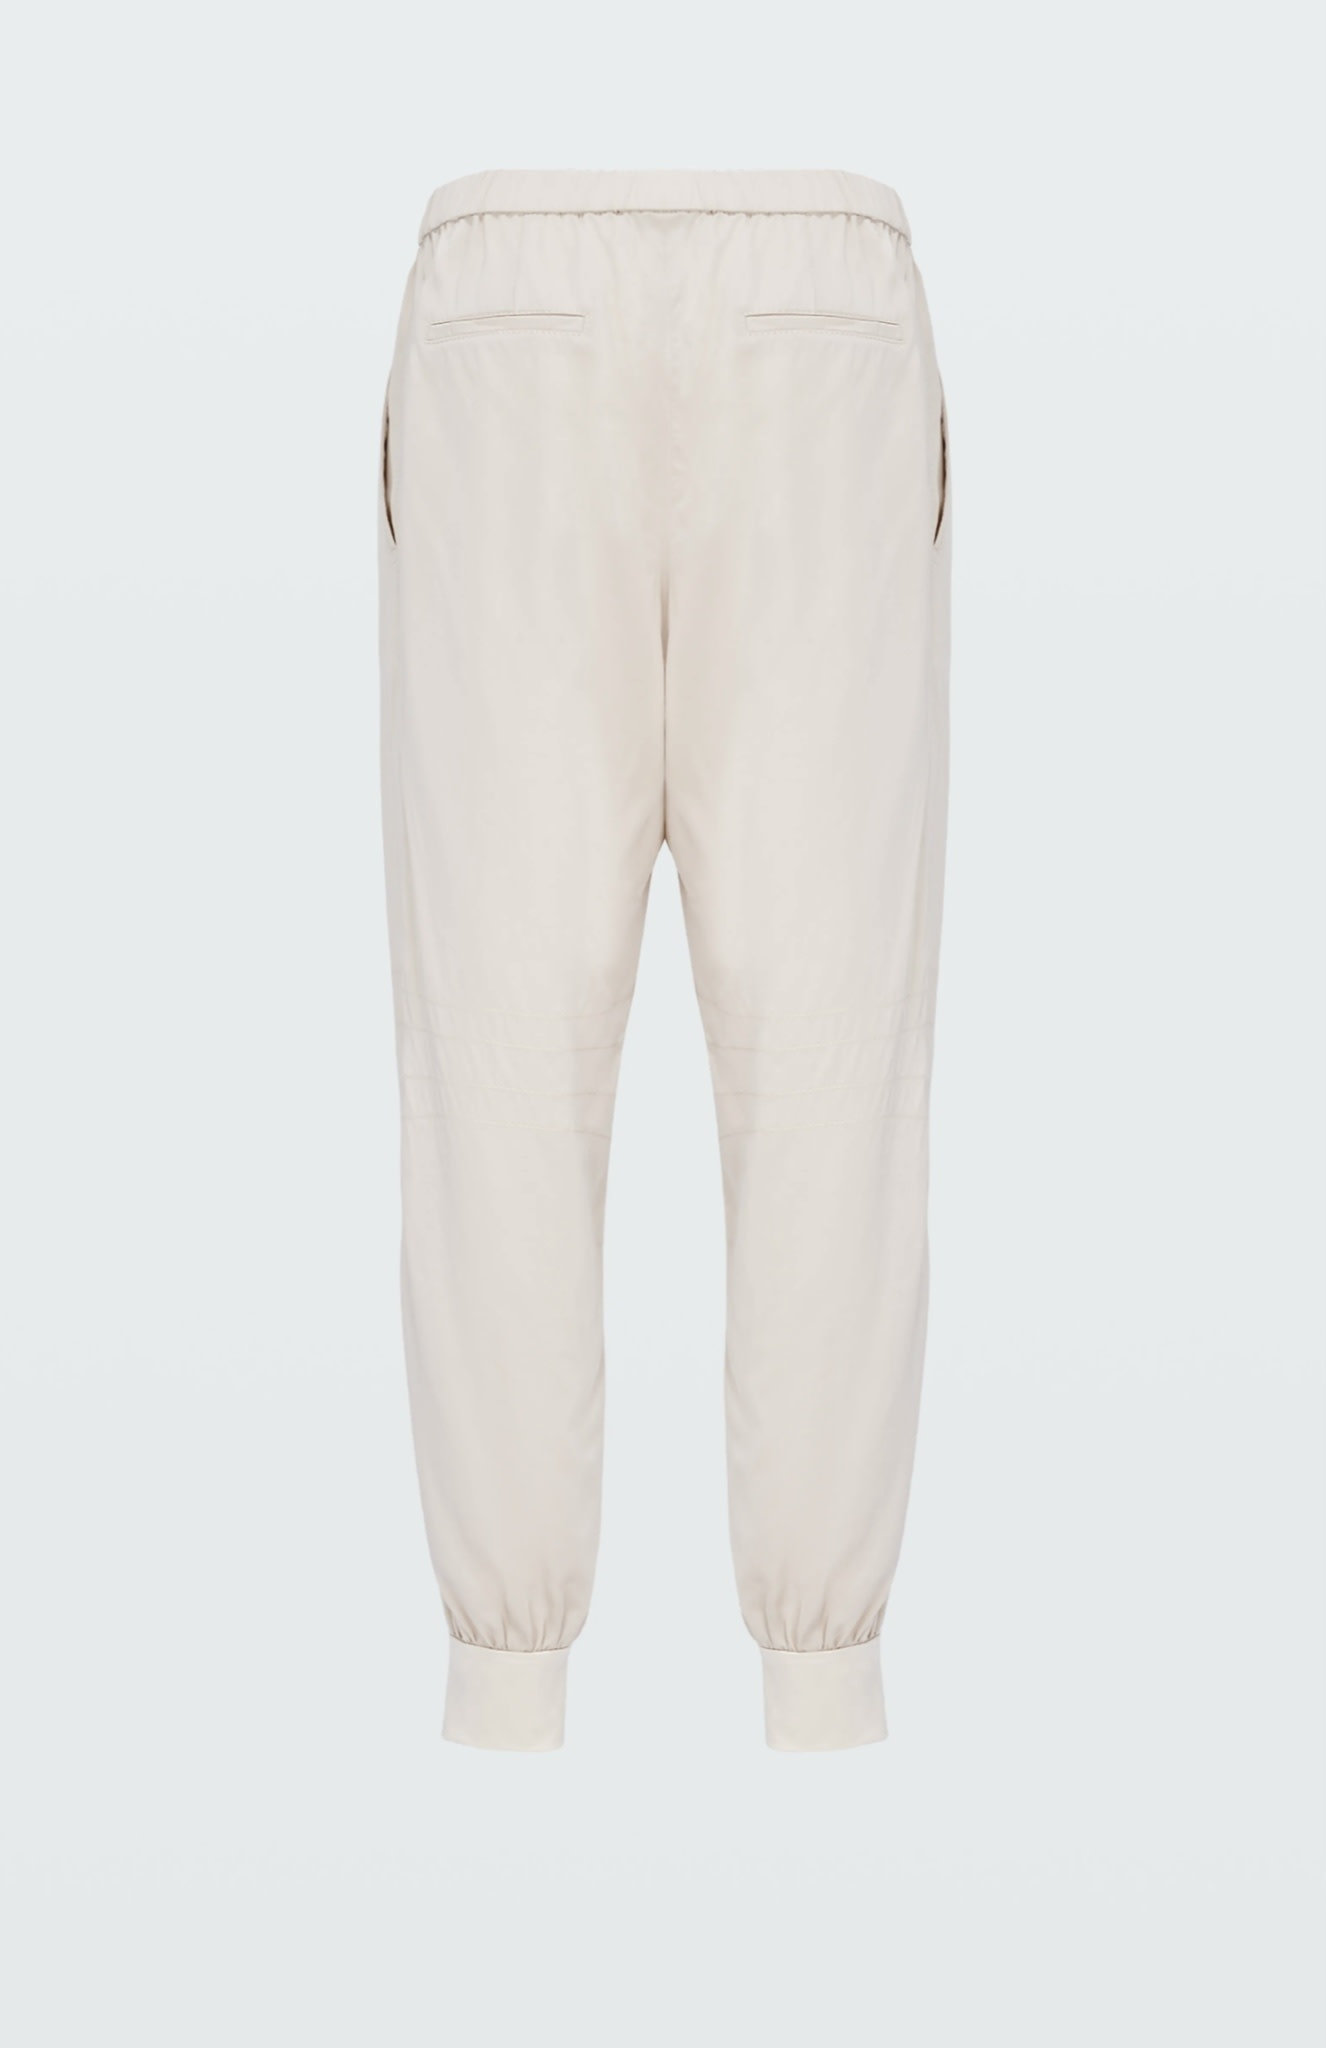 Slouchy cool pants dorothee schumacher-6